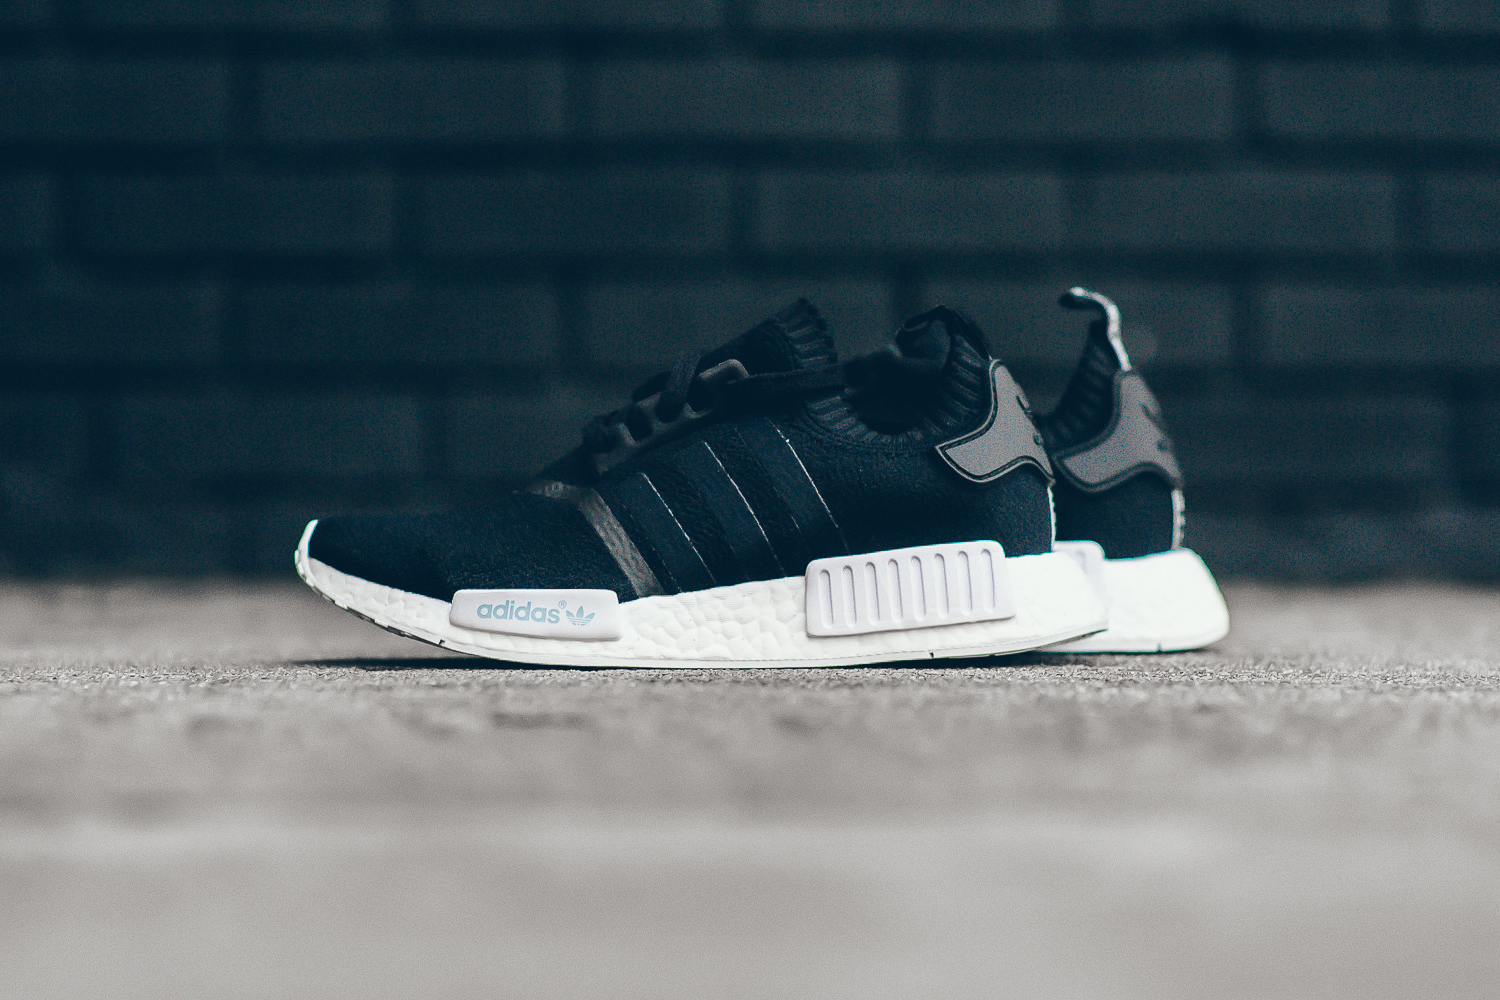 The NMD R2s are better I got BOTH Adidas NMD R1